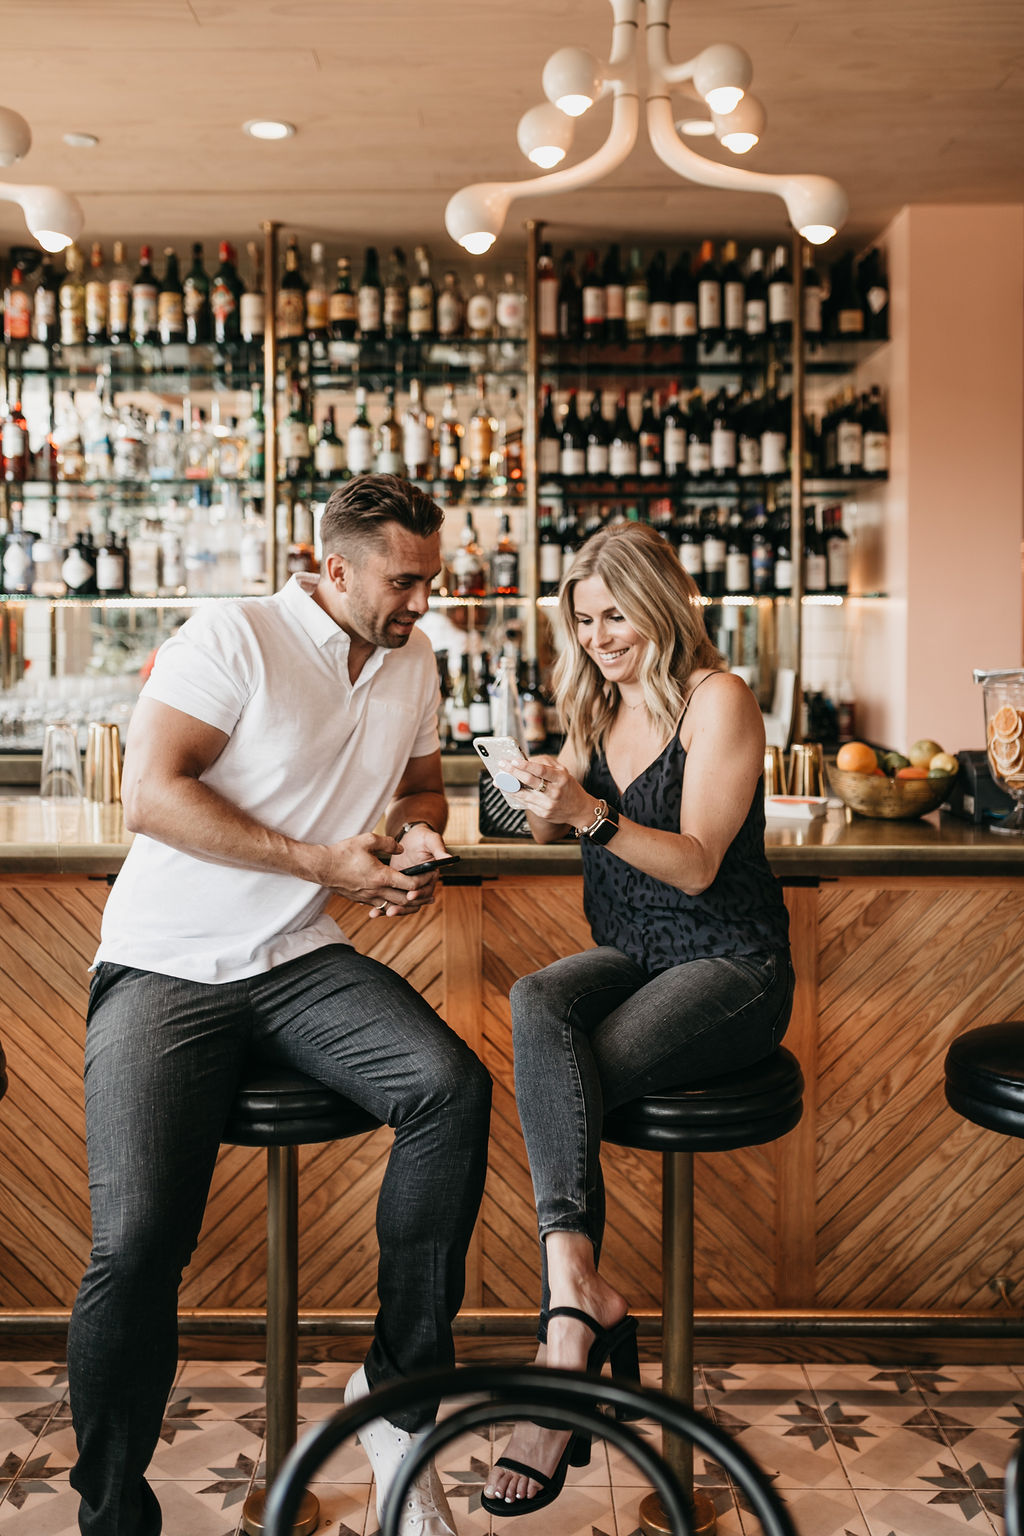 two people at a bar